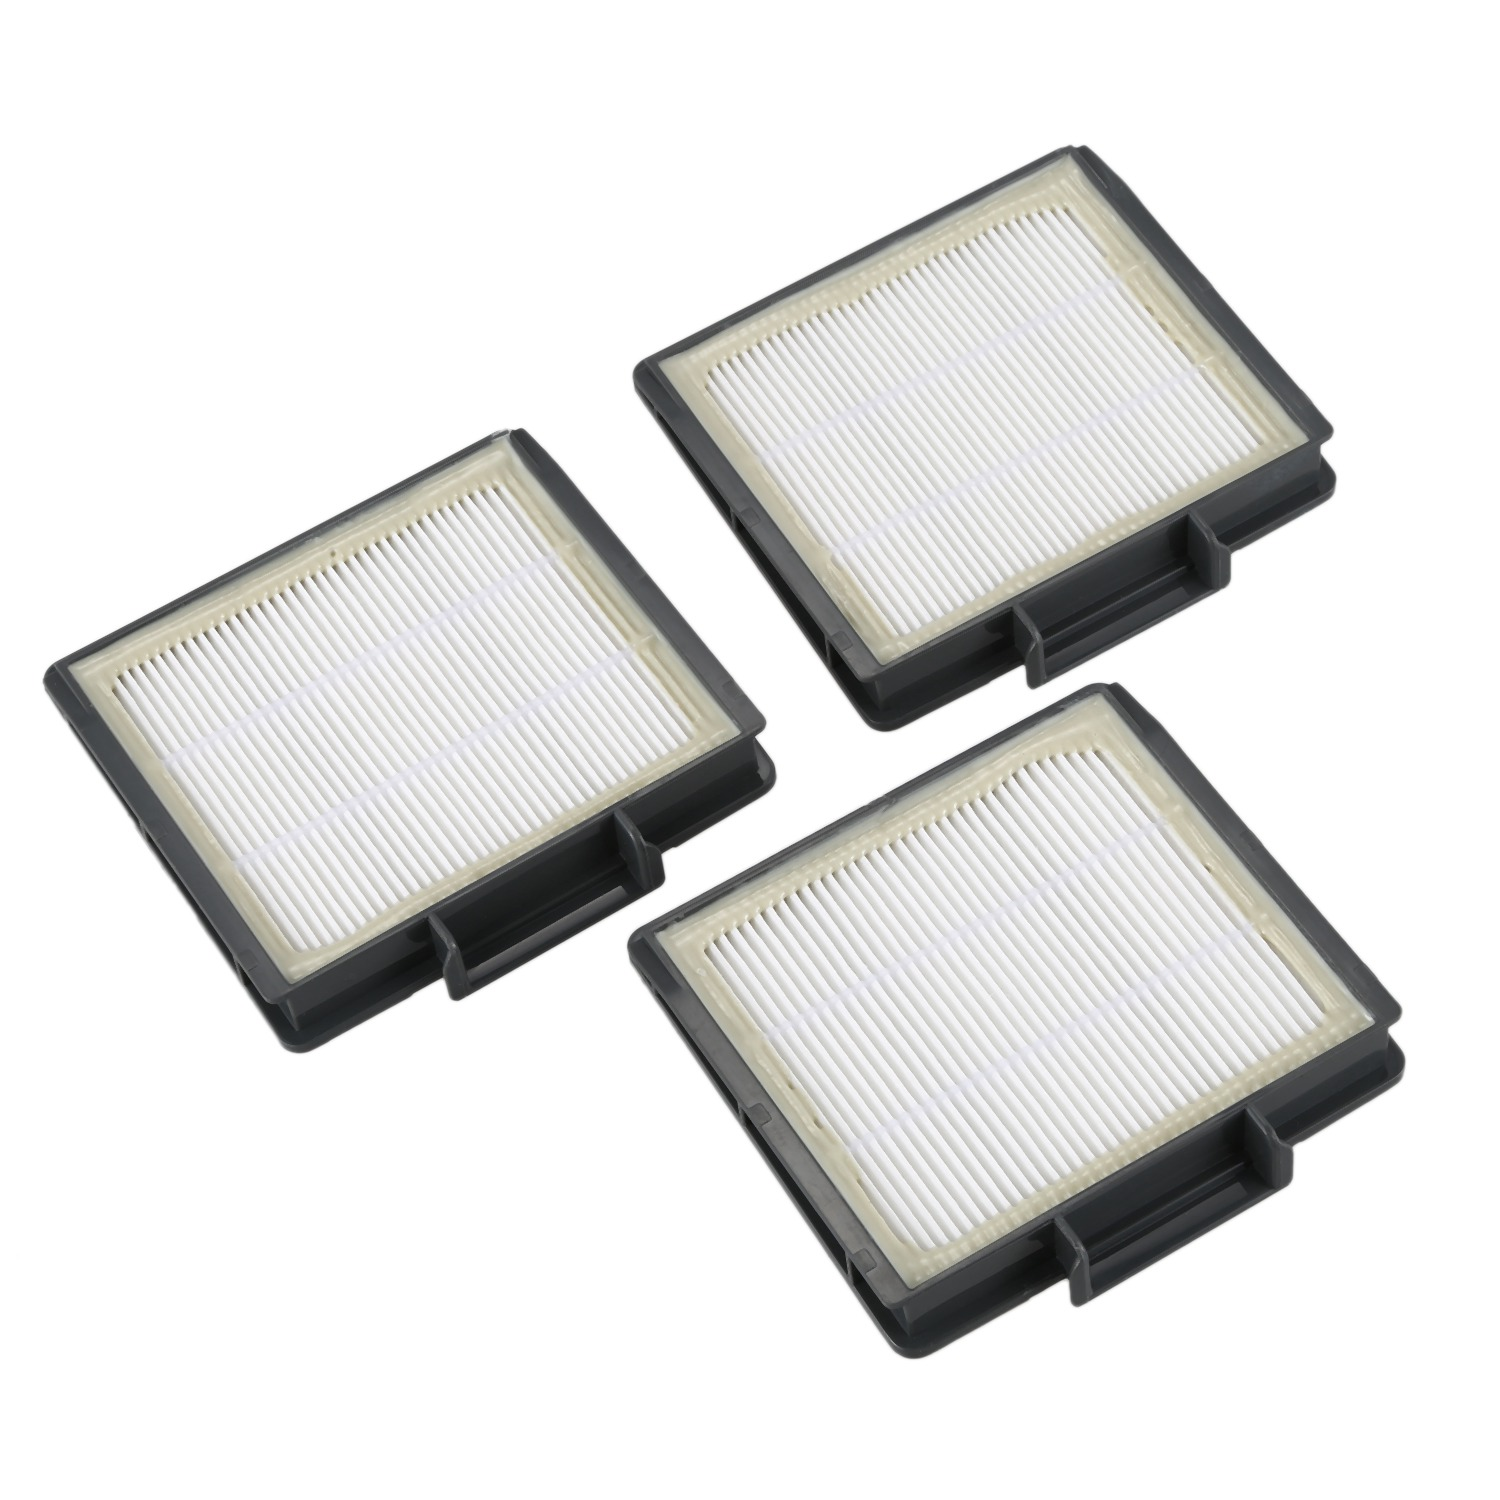 Vacuum Cleaner Parts Constructive Eas-3pcs Pre-motor Hepa Filters For Shark Ion Robot Rv700_n Rv720_n Rv850 Rv851wv Rv850brn/wv Vacuum Cleaner Part Fit # Rvffk9 Elegant In Style